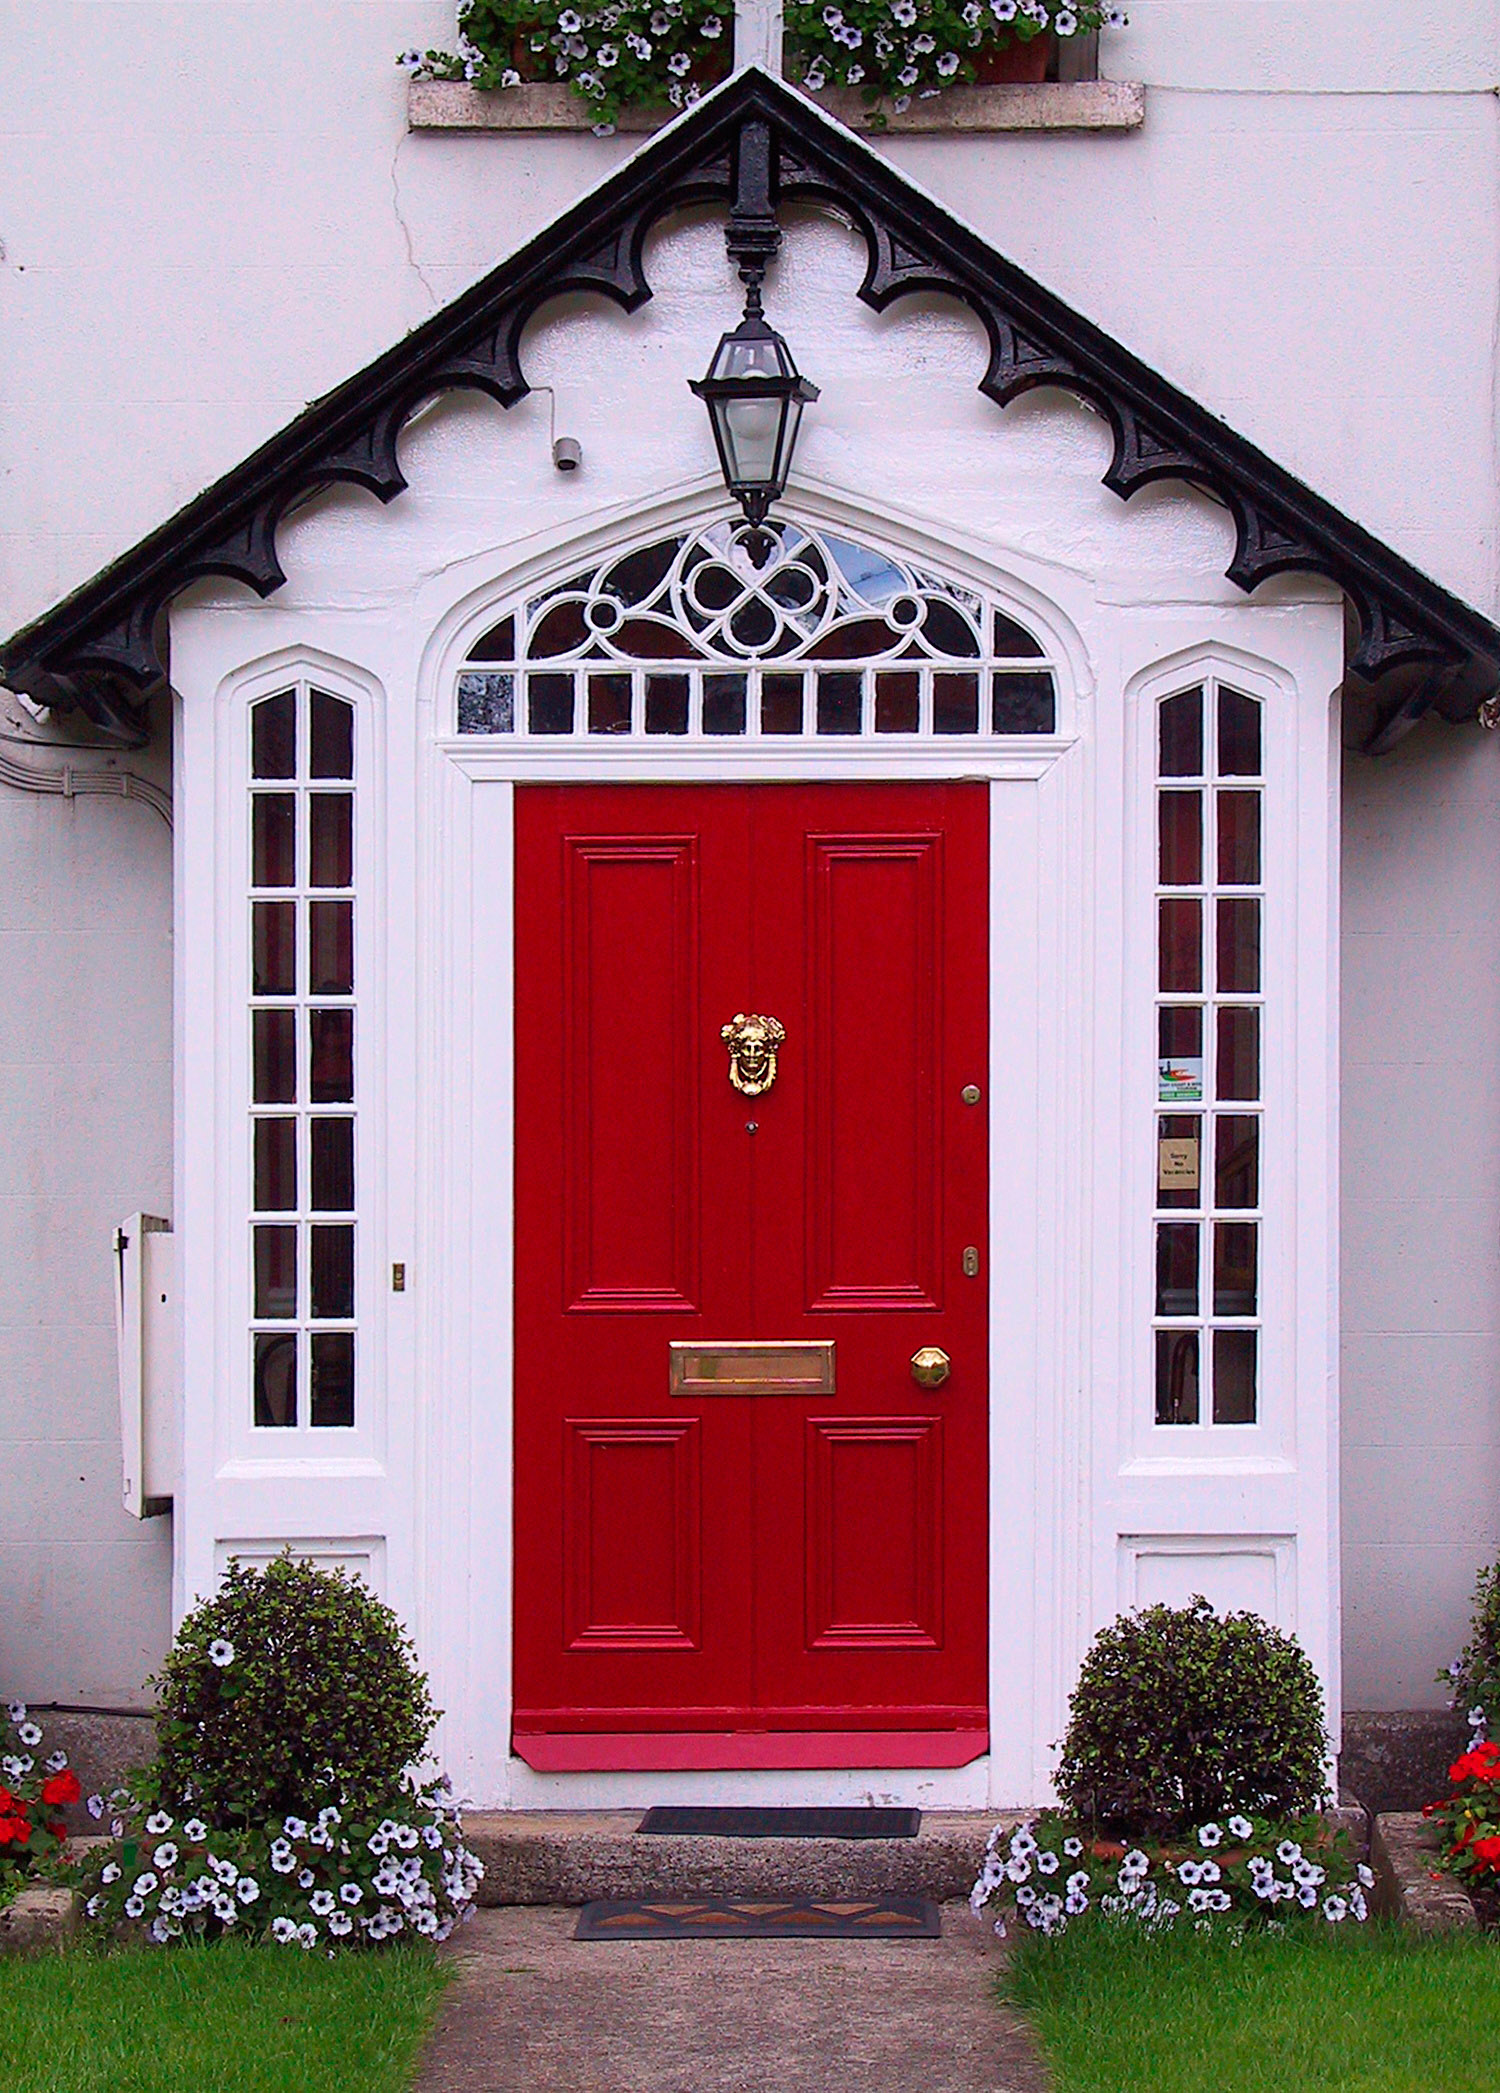 The Best Feng Shui Color For My Front Door For Attraction